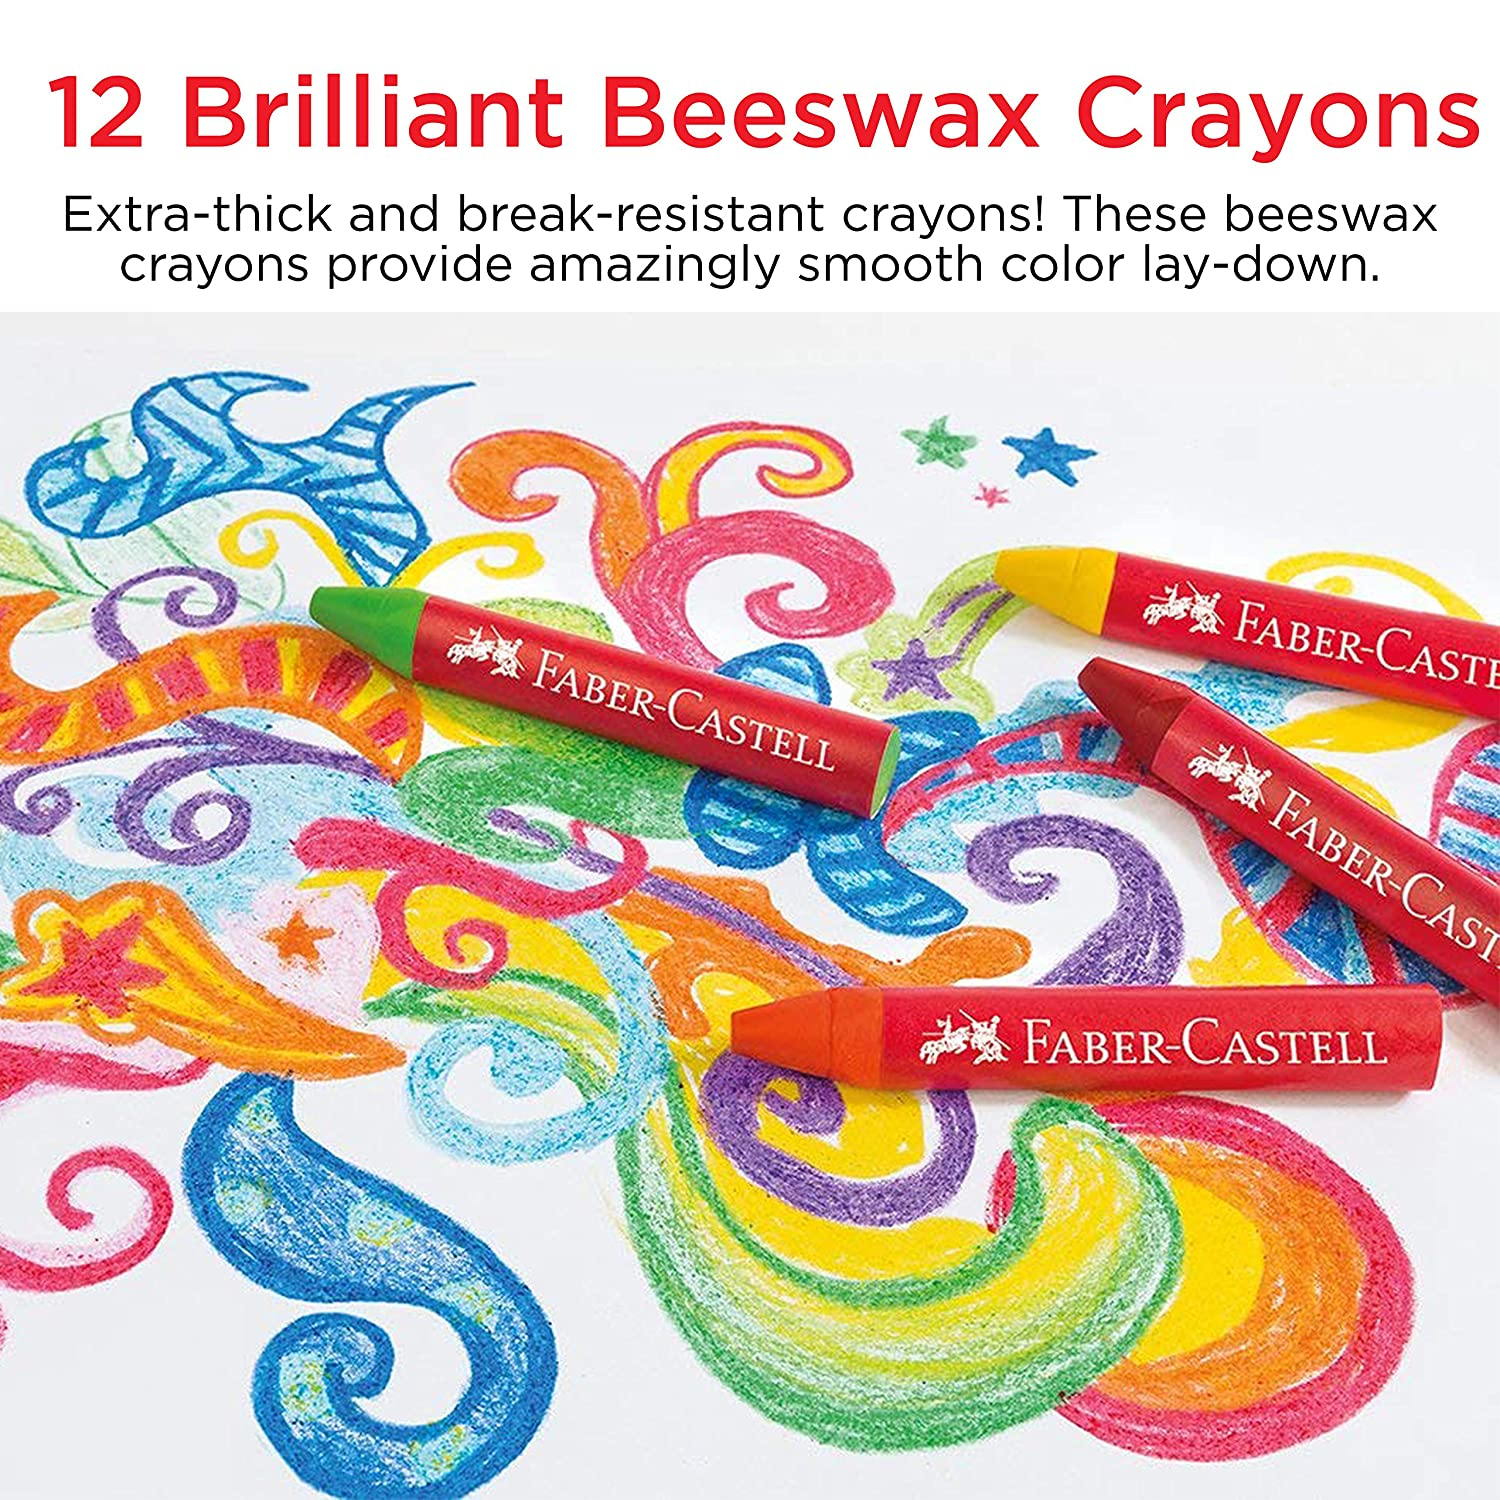 12 Count Brilliant Beeswax Crayons in Storage Case